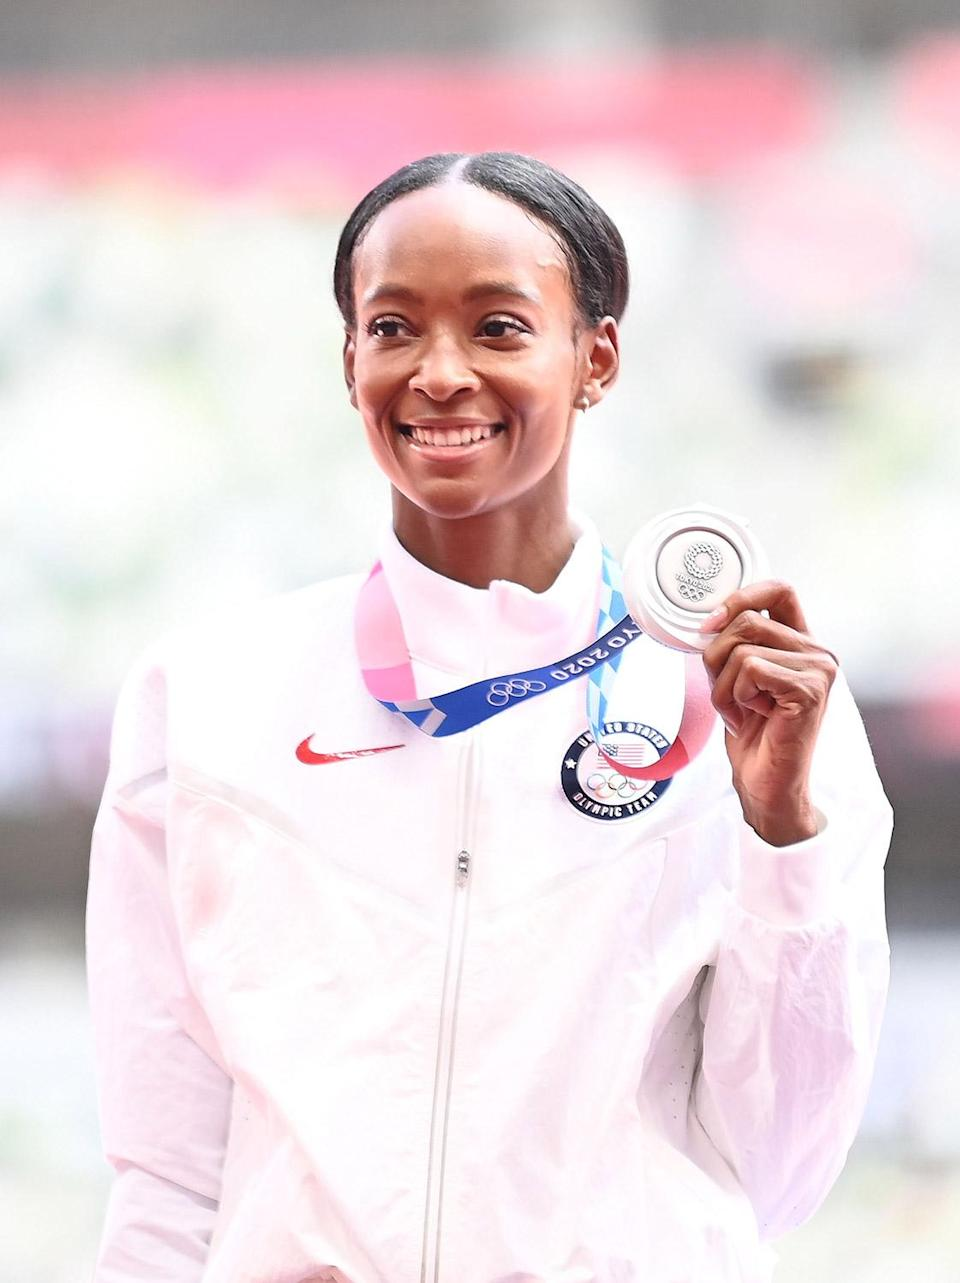 """<p>Biography: 21 years old</p> <p>Event: Women's 400m hurdles</p> <p>Quote: """"I think we as a society need to separate all of the accomplishments that are made and be happy with the accomplishments that you make within yourself. To be sitting here, 1-2-3 with crazy fast times, it's an accomplishment in itself. I'm truly proud of that.""""</p>"""